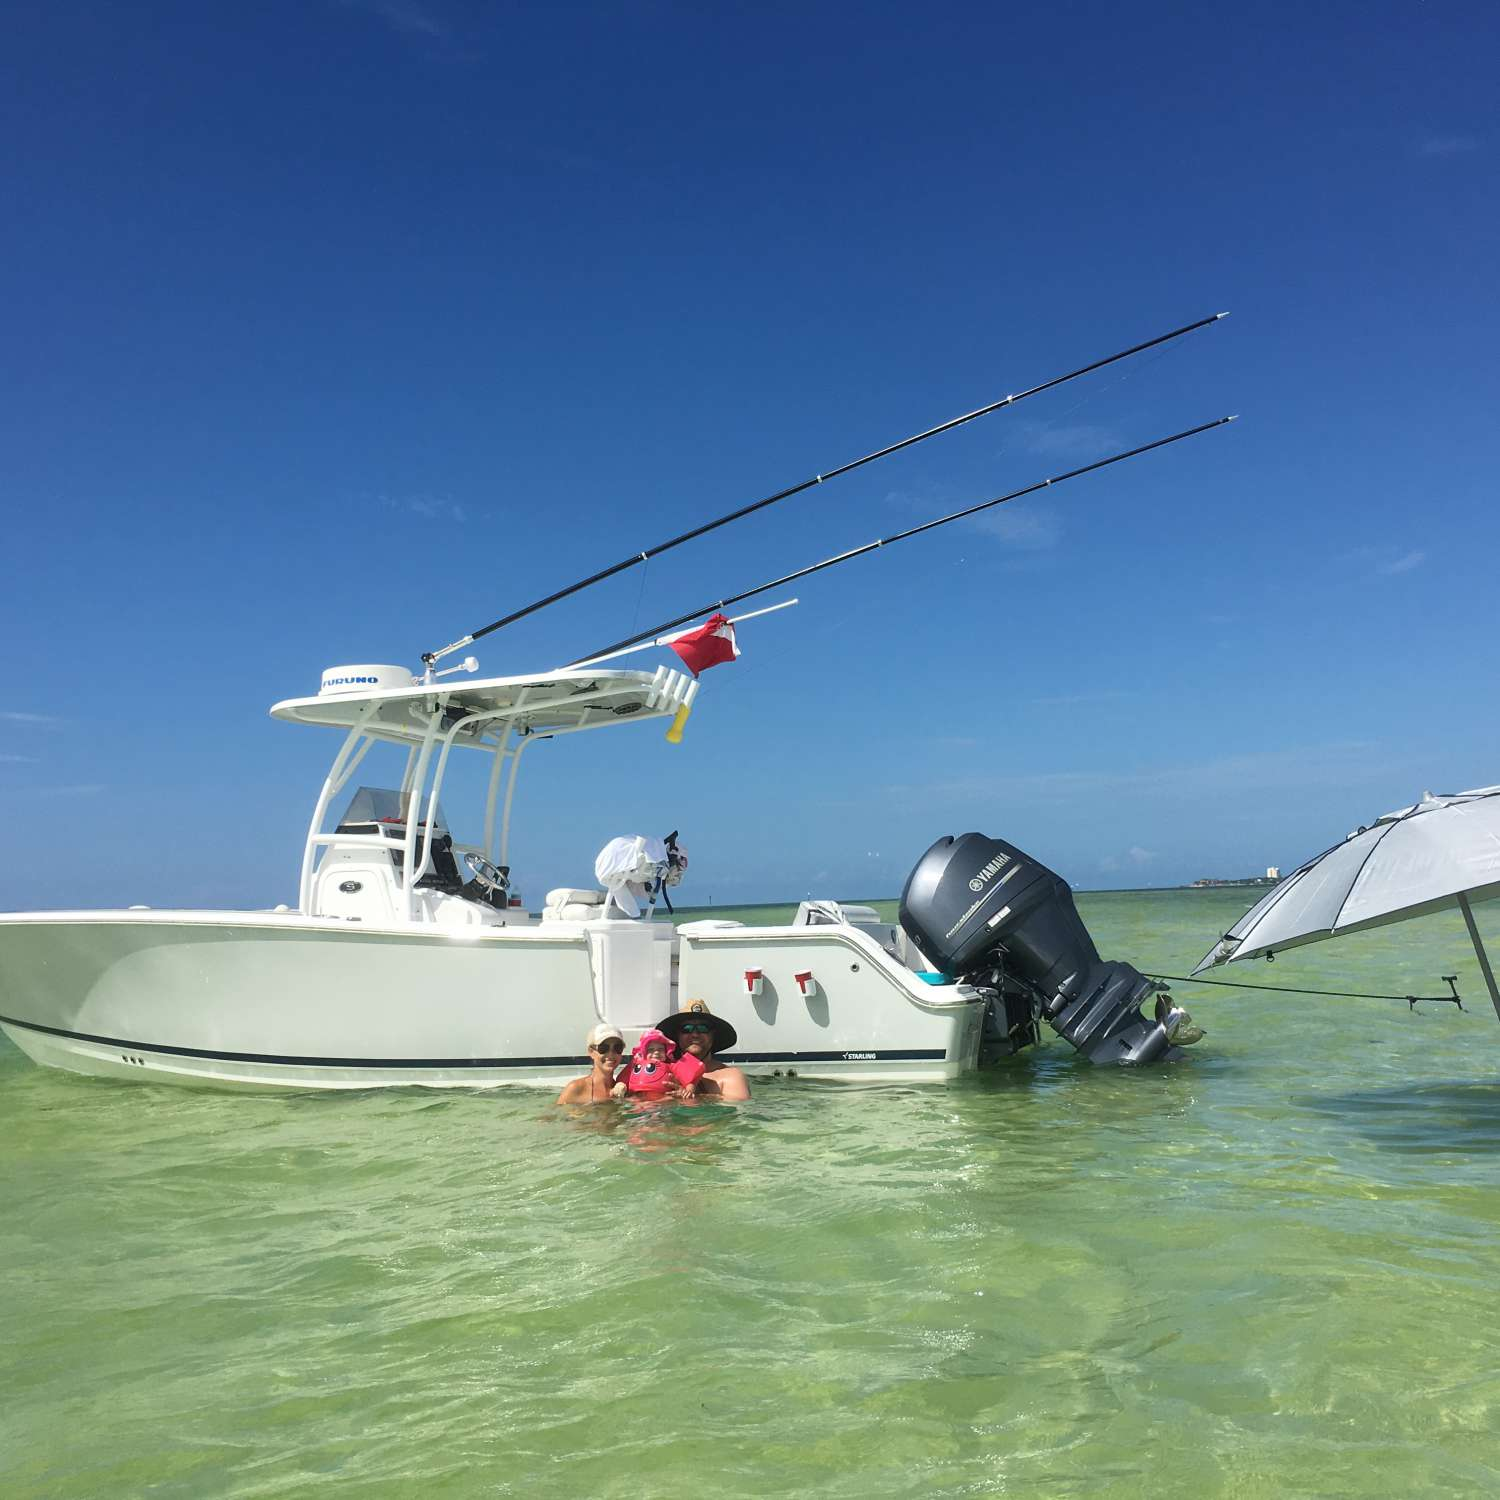 Title: Family Day - On board their Sportsman Heritage 251 Center Console - Location: Clermont, Florida. Participating in the Photo Contest #SportsmanAugust2016